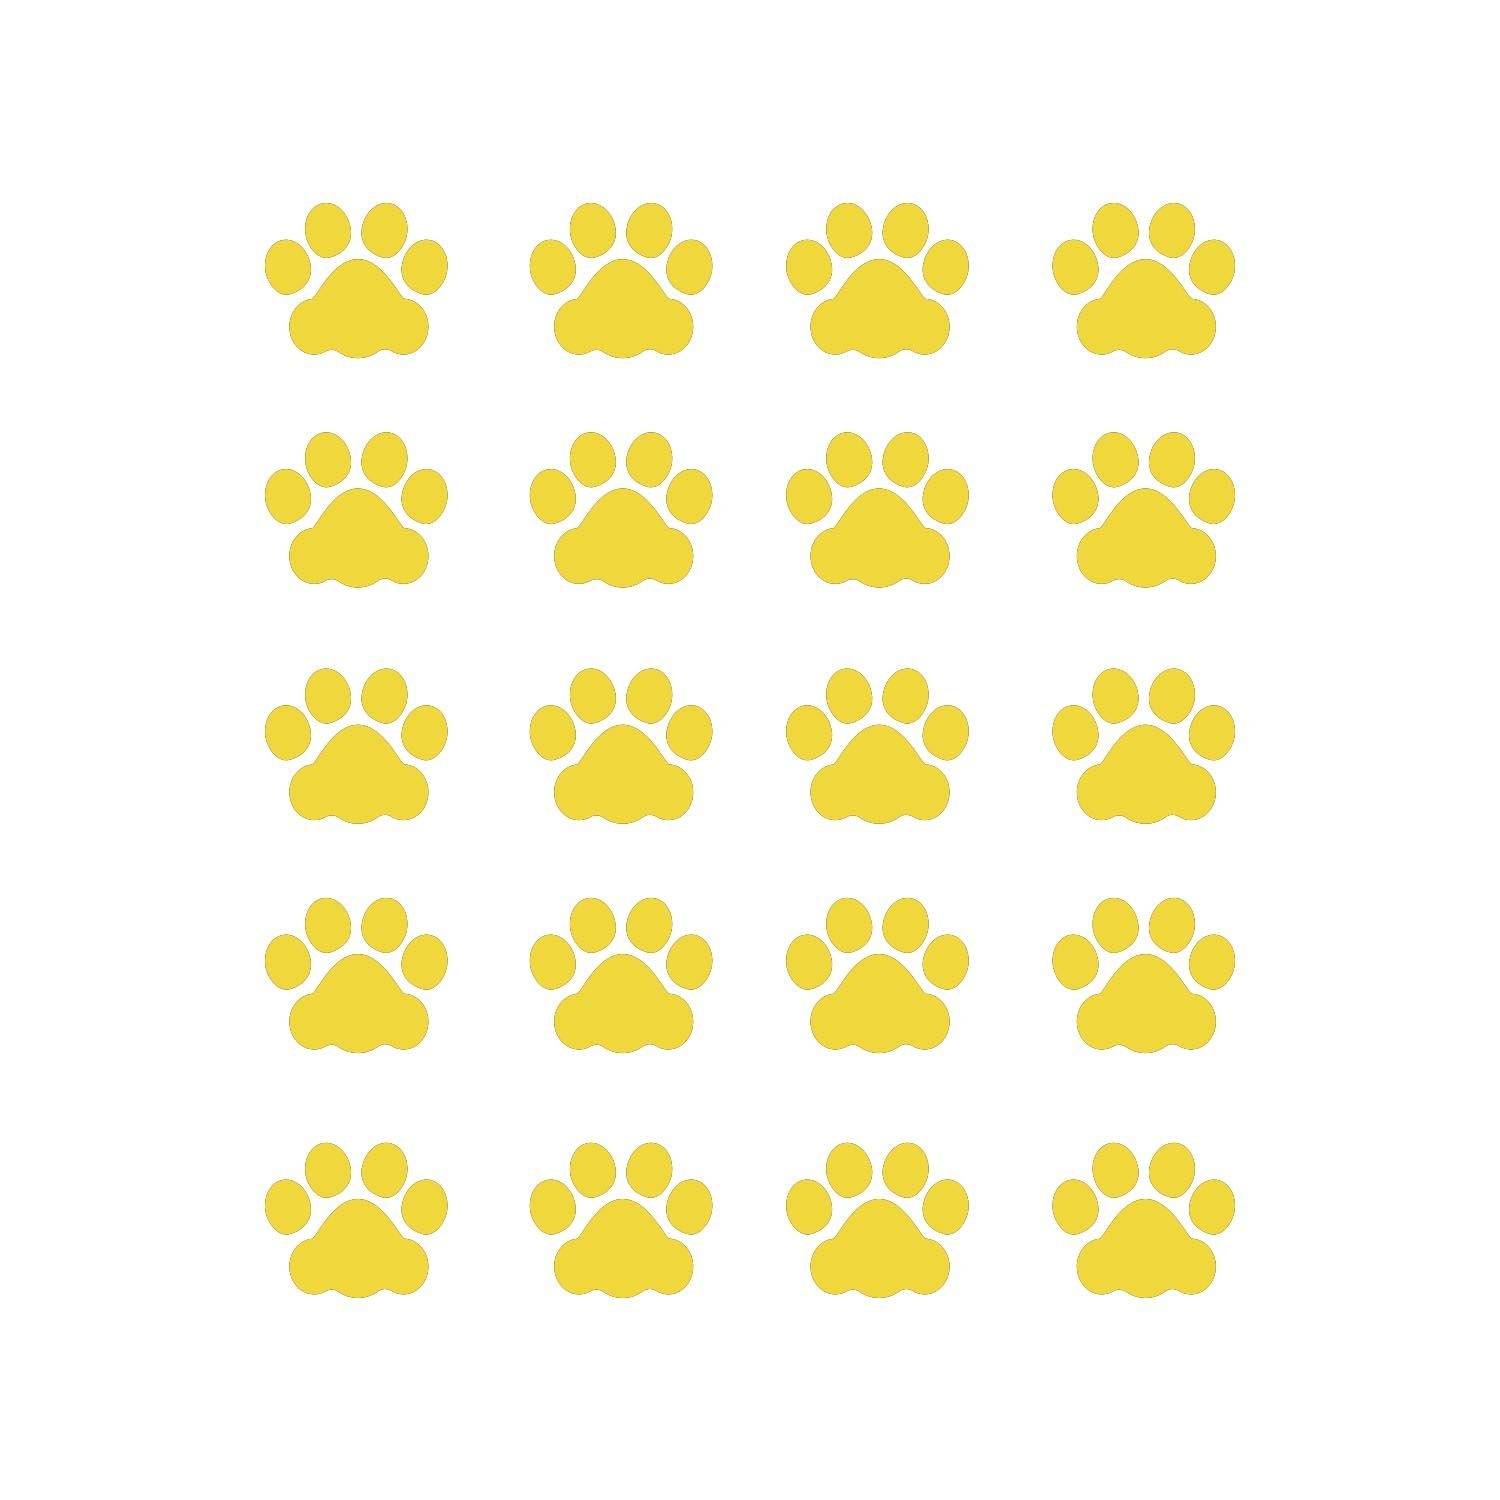 LiteMark 1 Inch Yellow Removable Cat Paw Prints Decal Stickers for Floors and Walls - Pack of 60